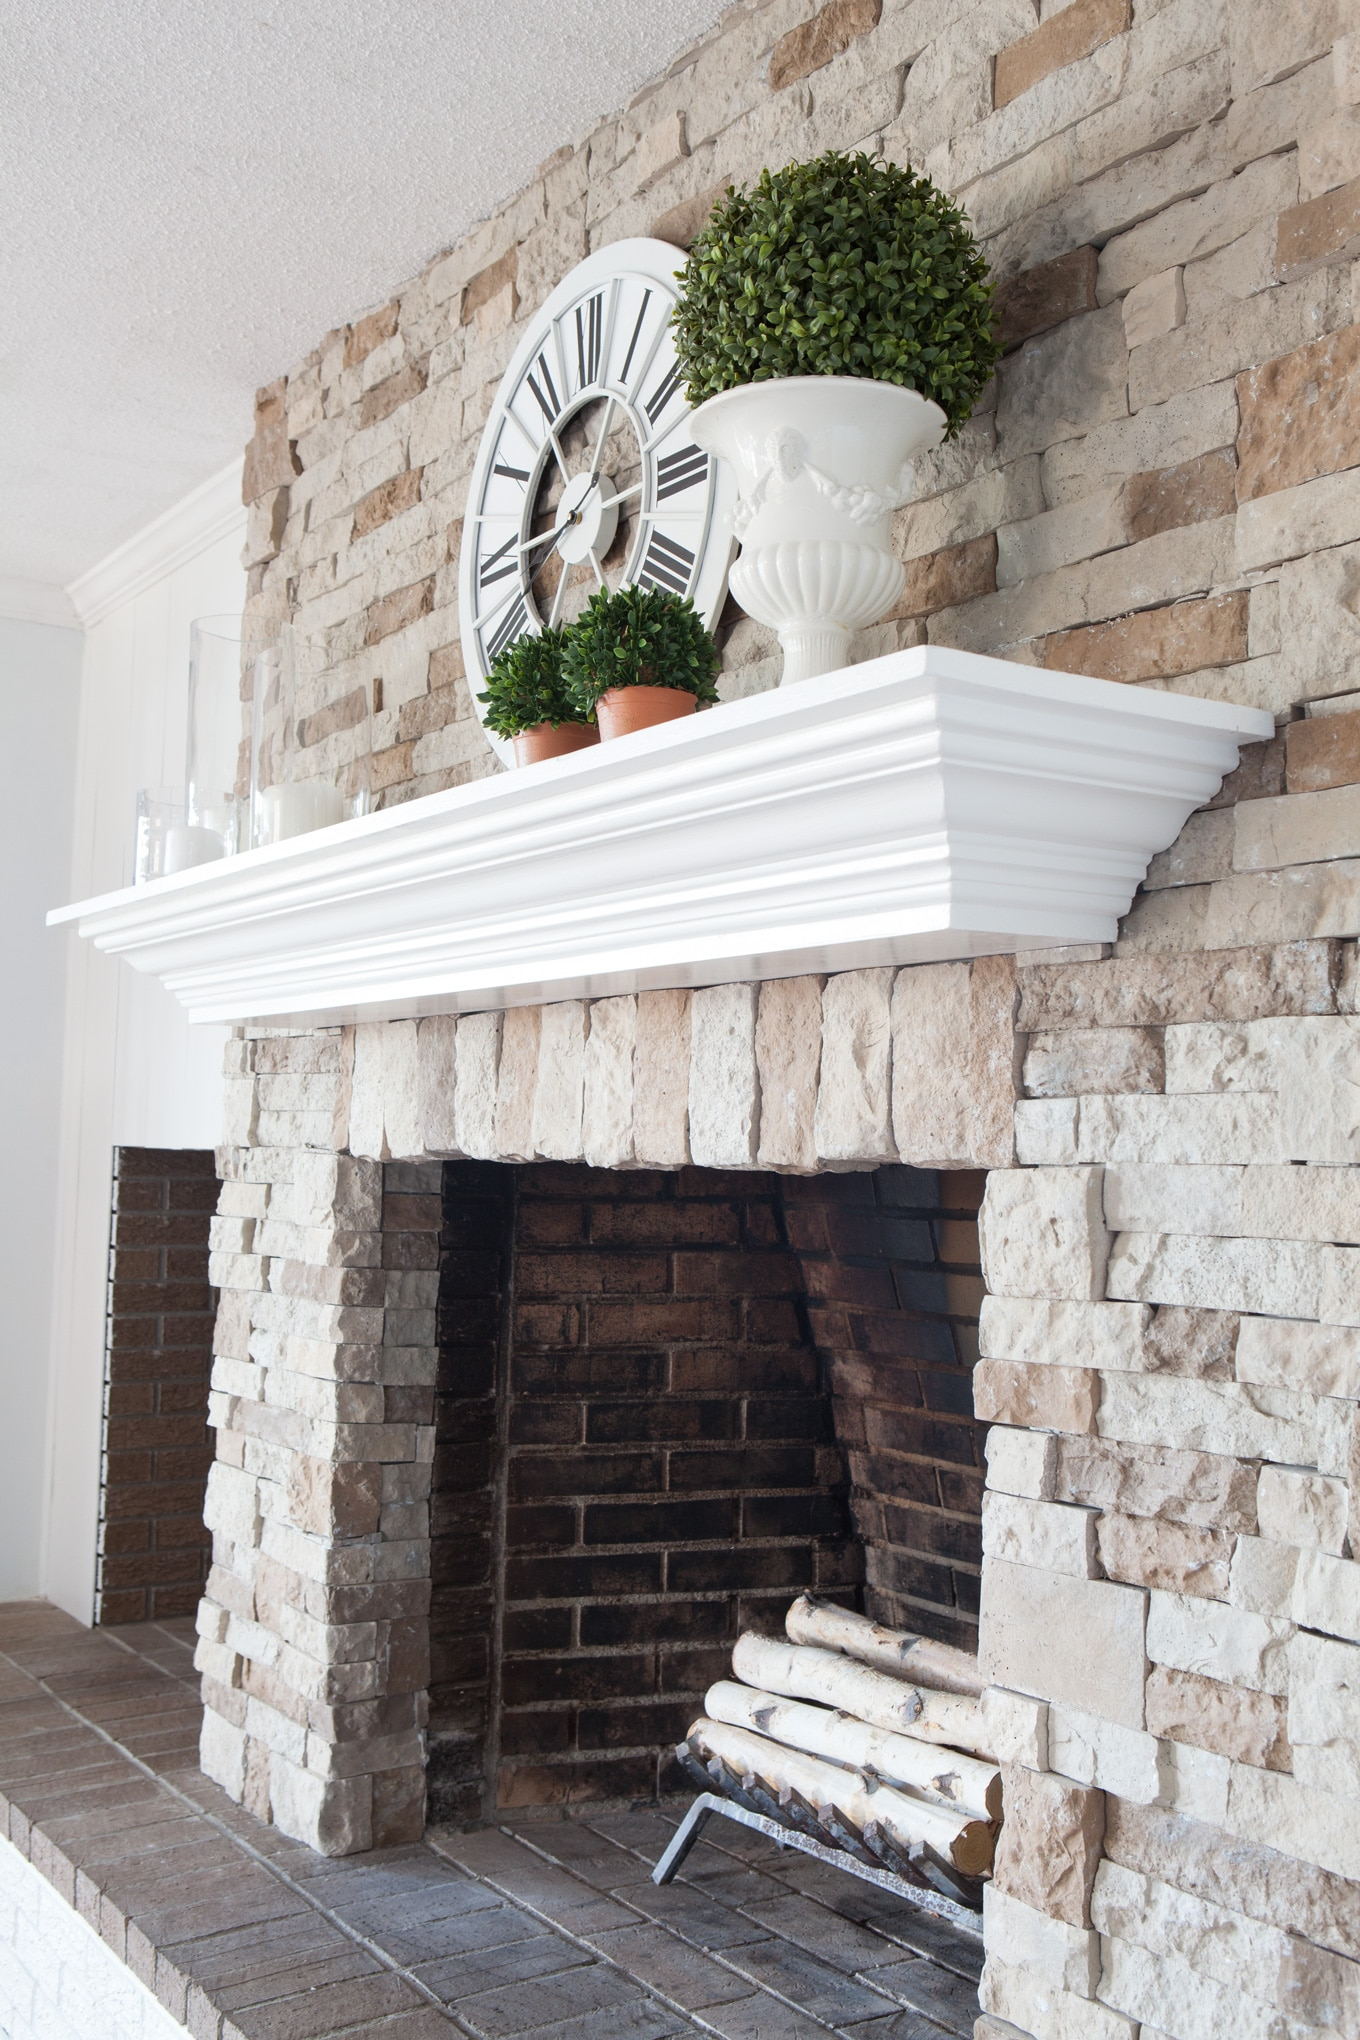 Furniture repurposed into a fireplace mantel